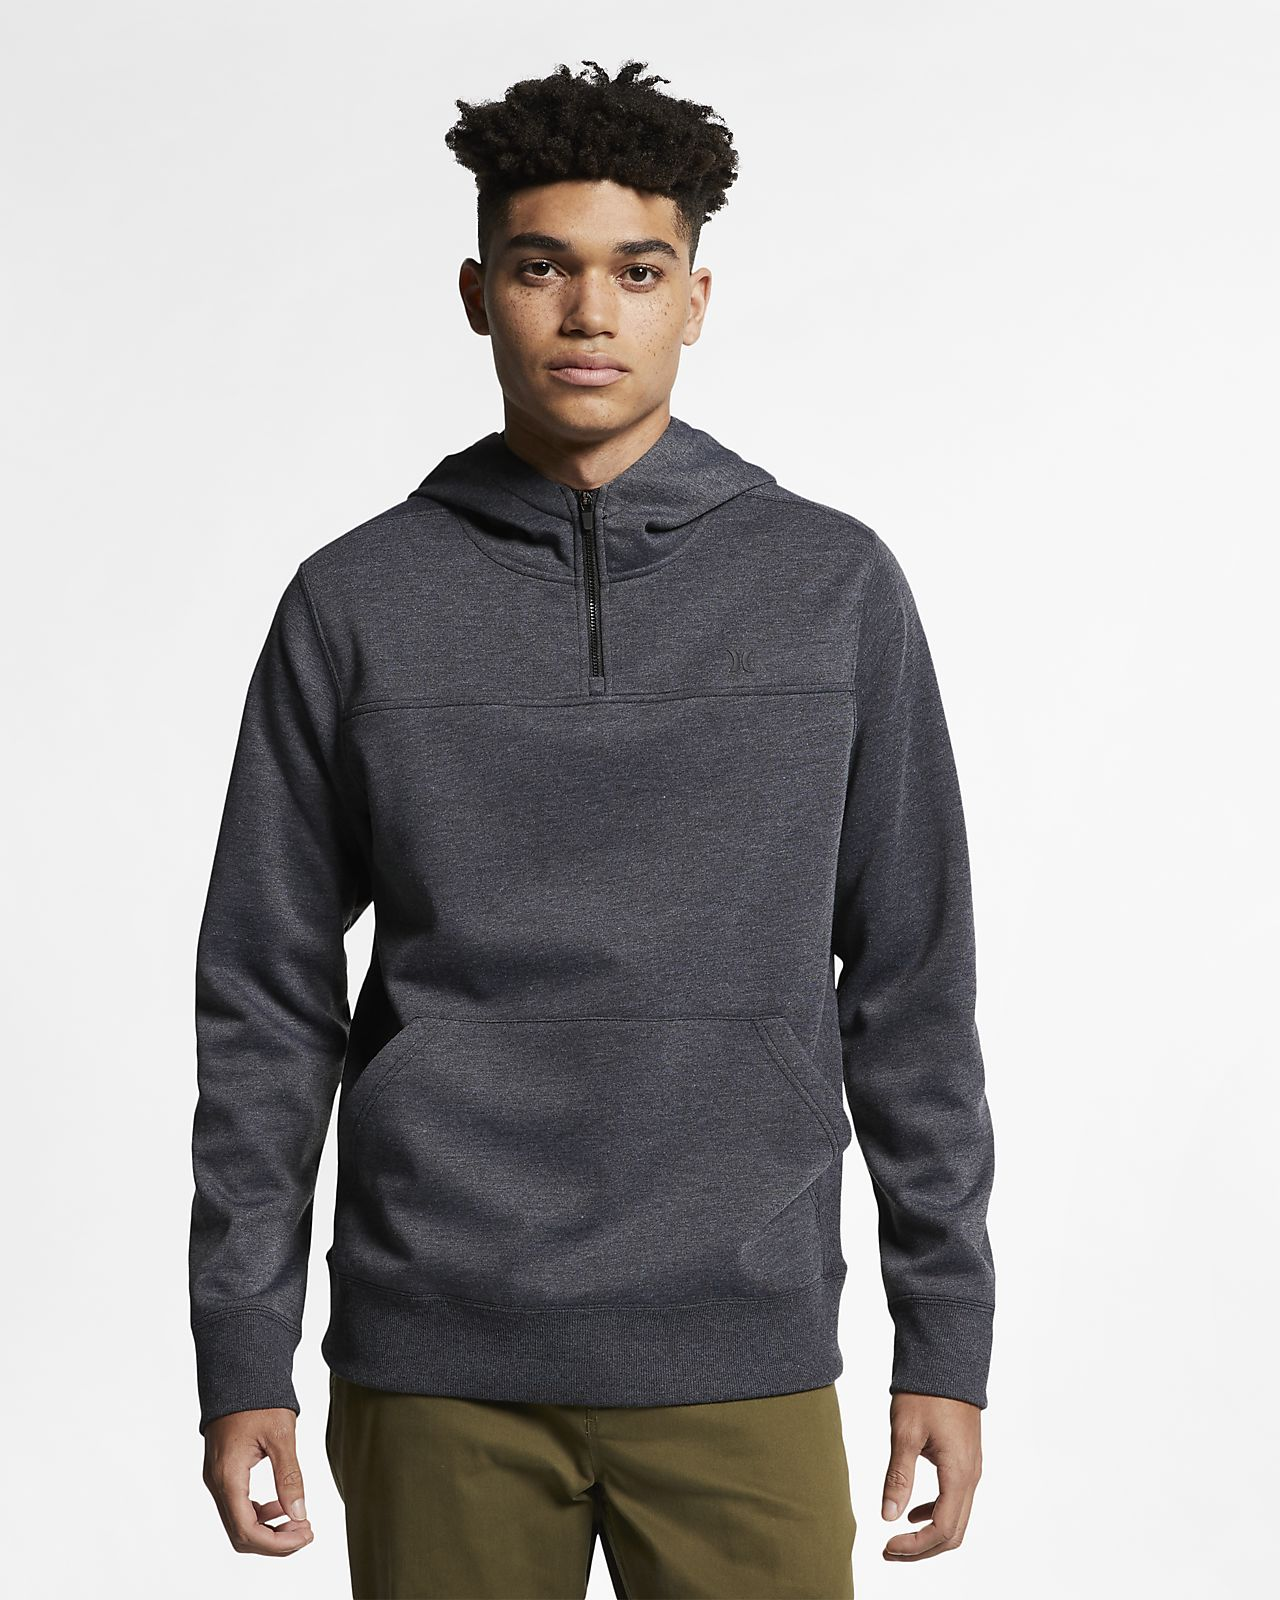 Hurley Therma Protect Plus Men's 1/4-Zip Fleece Hoodie